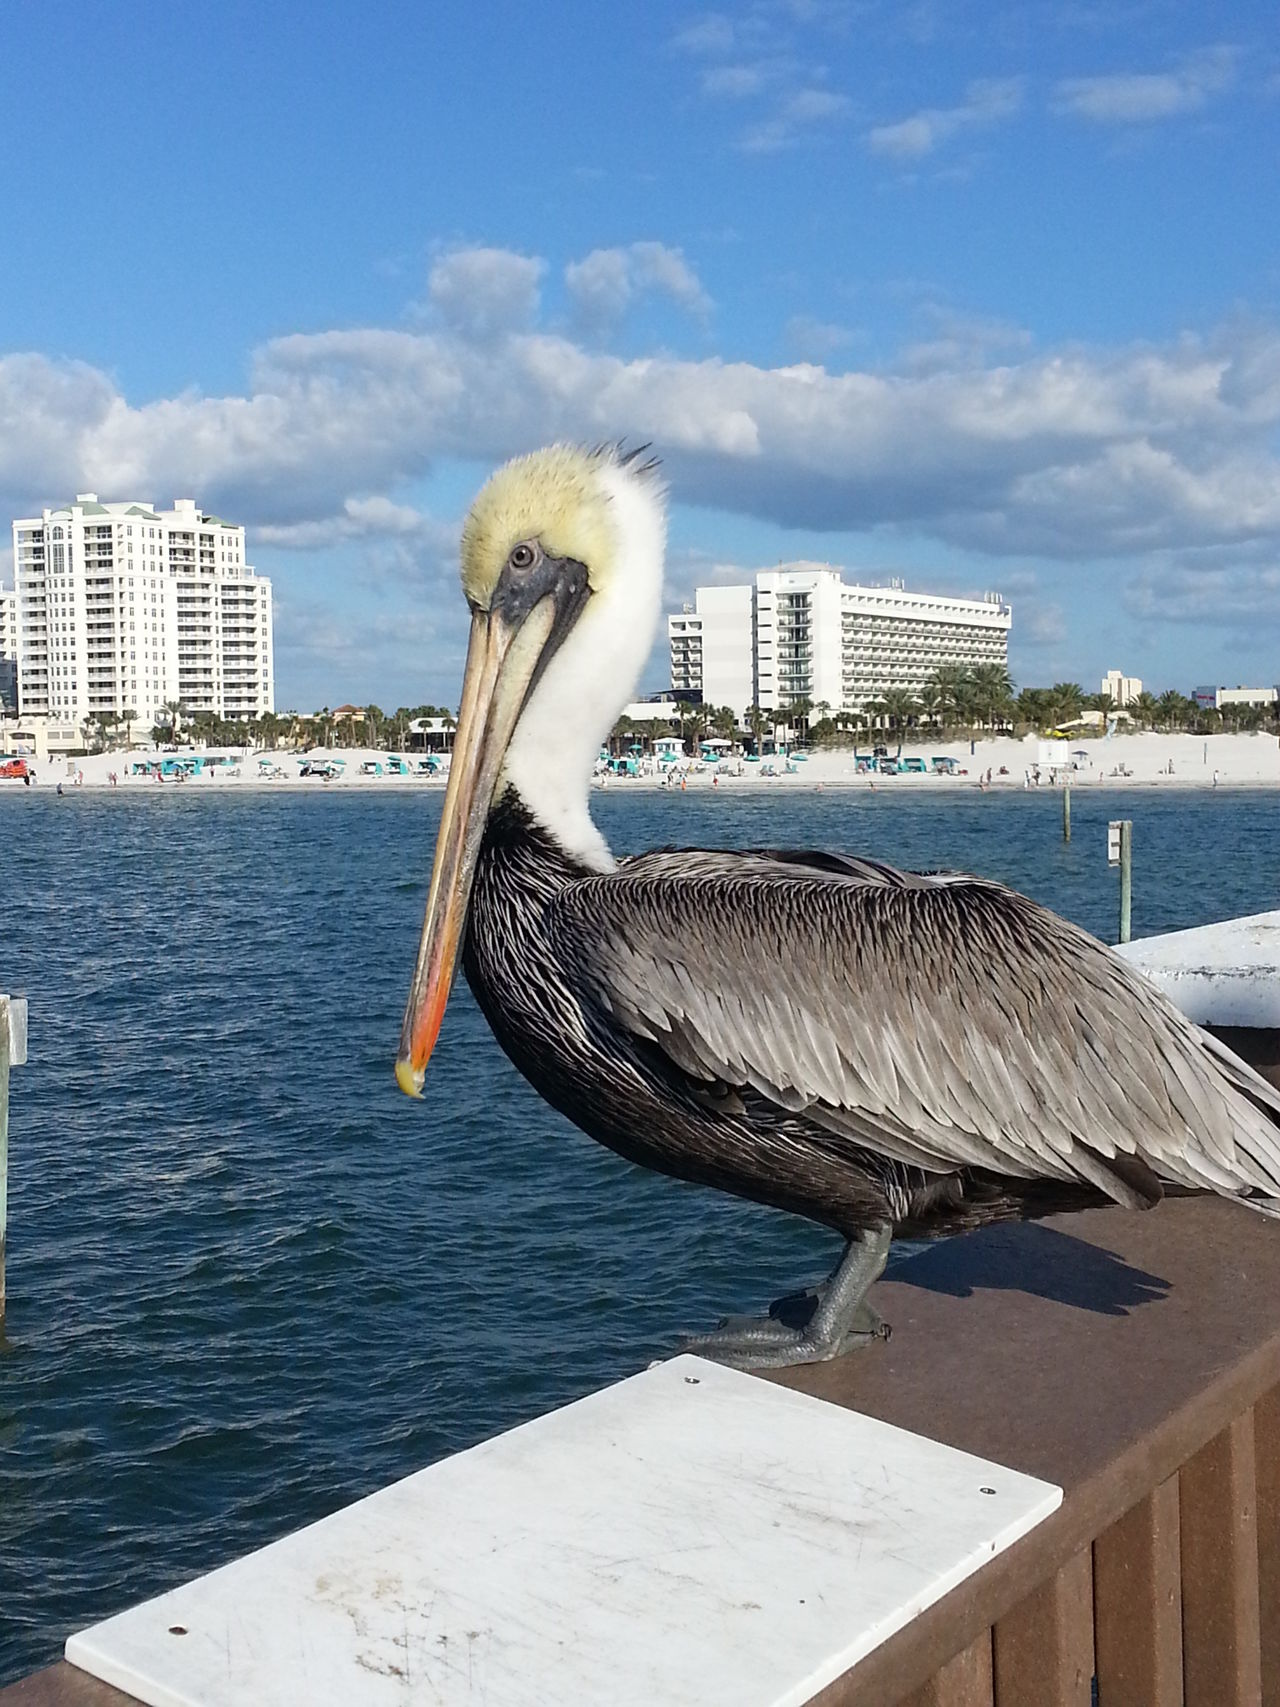 Animal Themes Animals In The Wild Architecture Bird Building Exterior City Day Florida Nature No People One Animal Outdoors Pelican Sculpture Sea Sky Tampa Travel Water